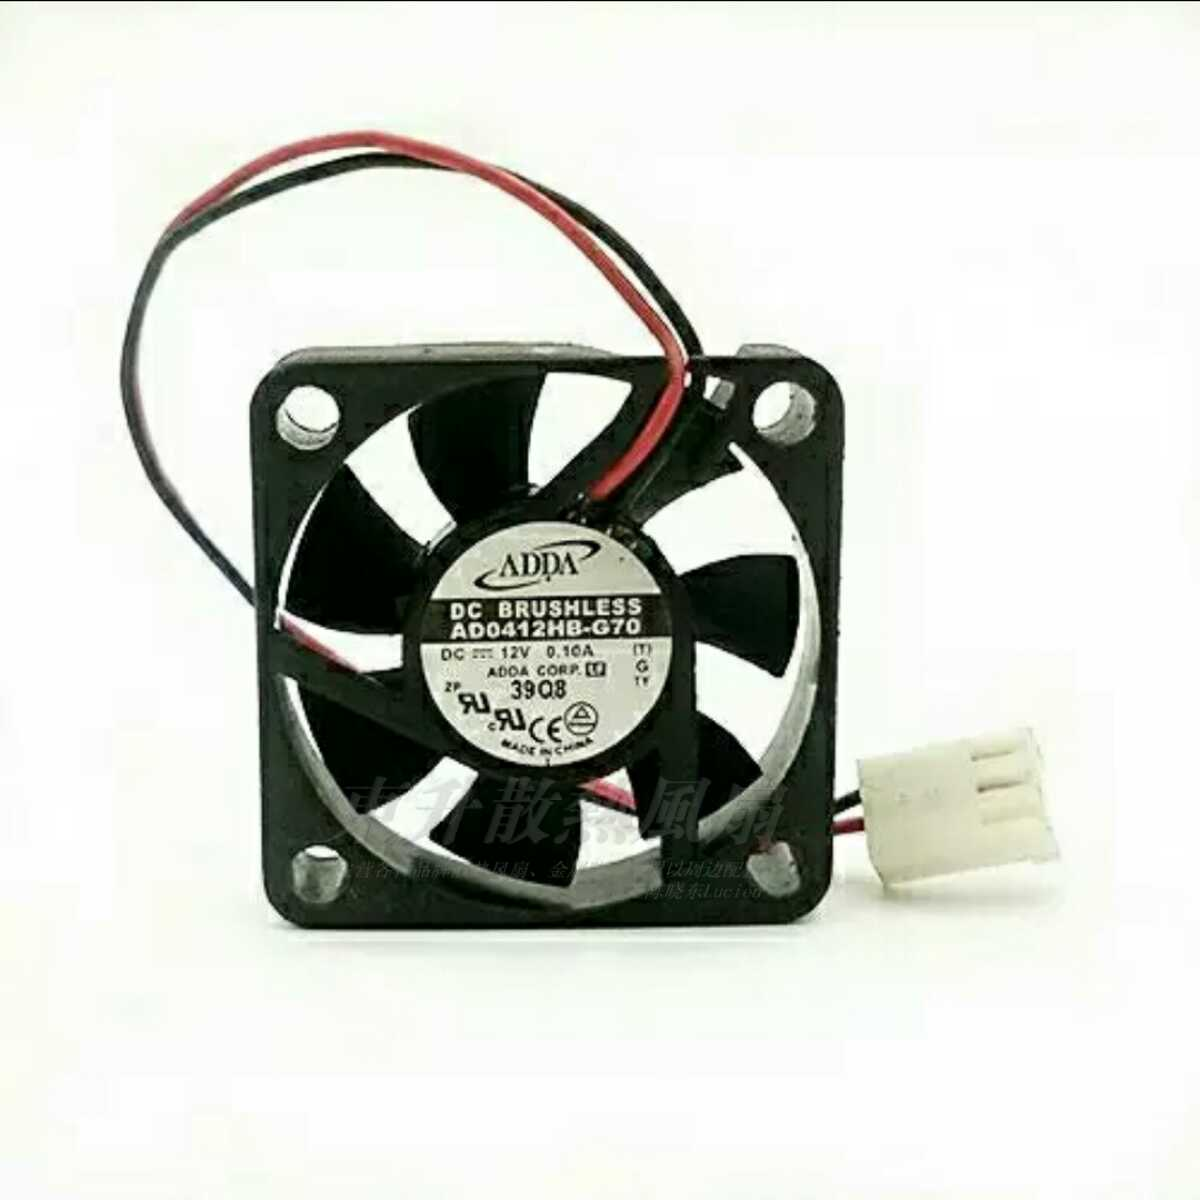 for ADDA AD0412HB-G70 40*40*10mm 4CM <font><b>40MM</b></font> 12V DC 0.10A Double ball super <font><b>quiet</b></font> cooling <font><b>fan</b></font> image